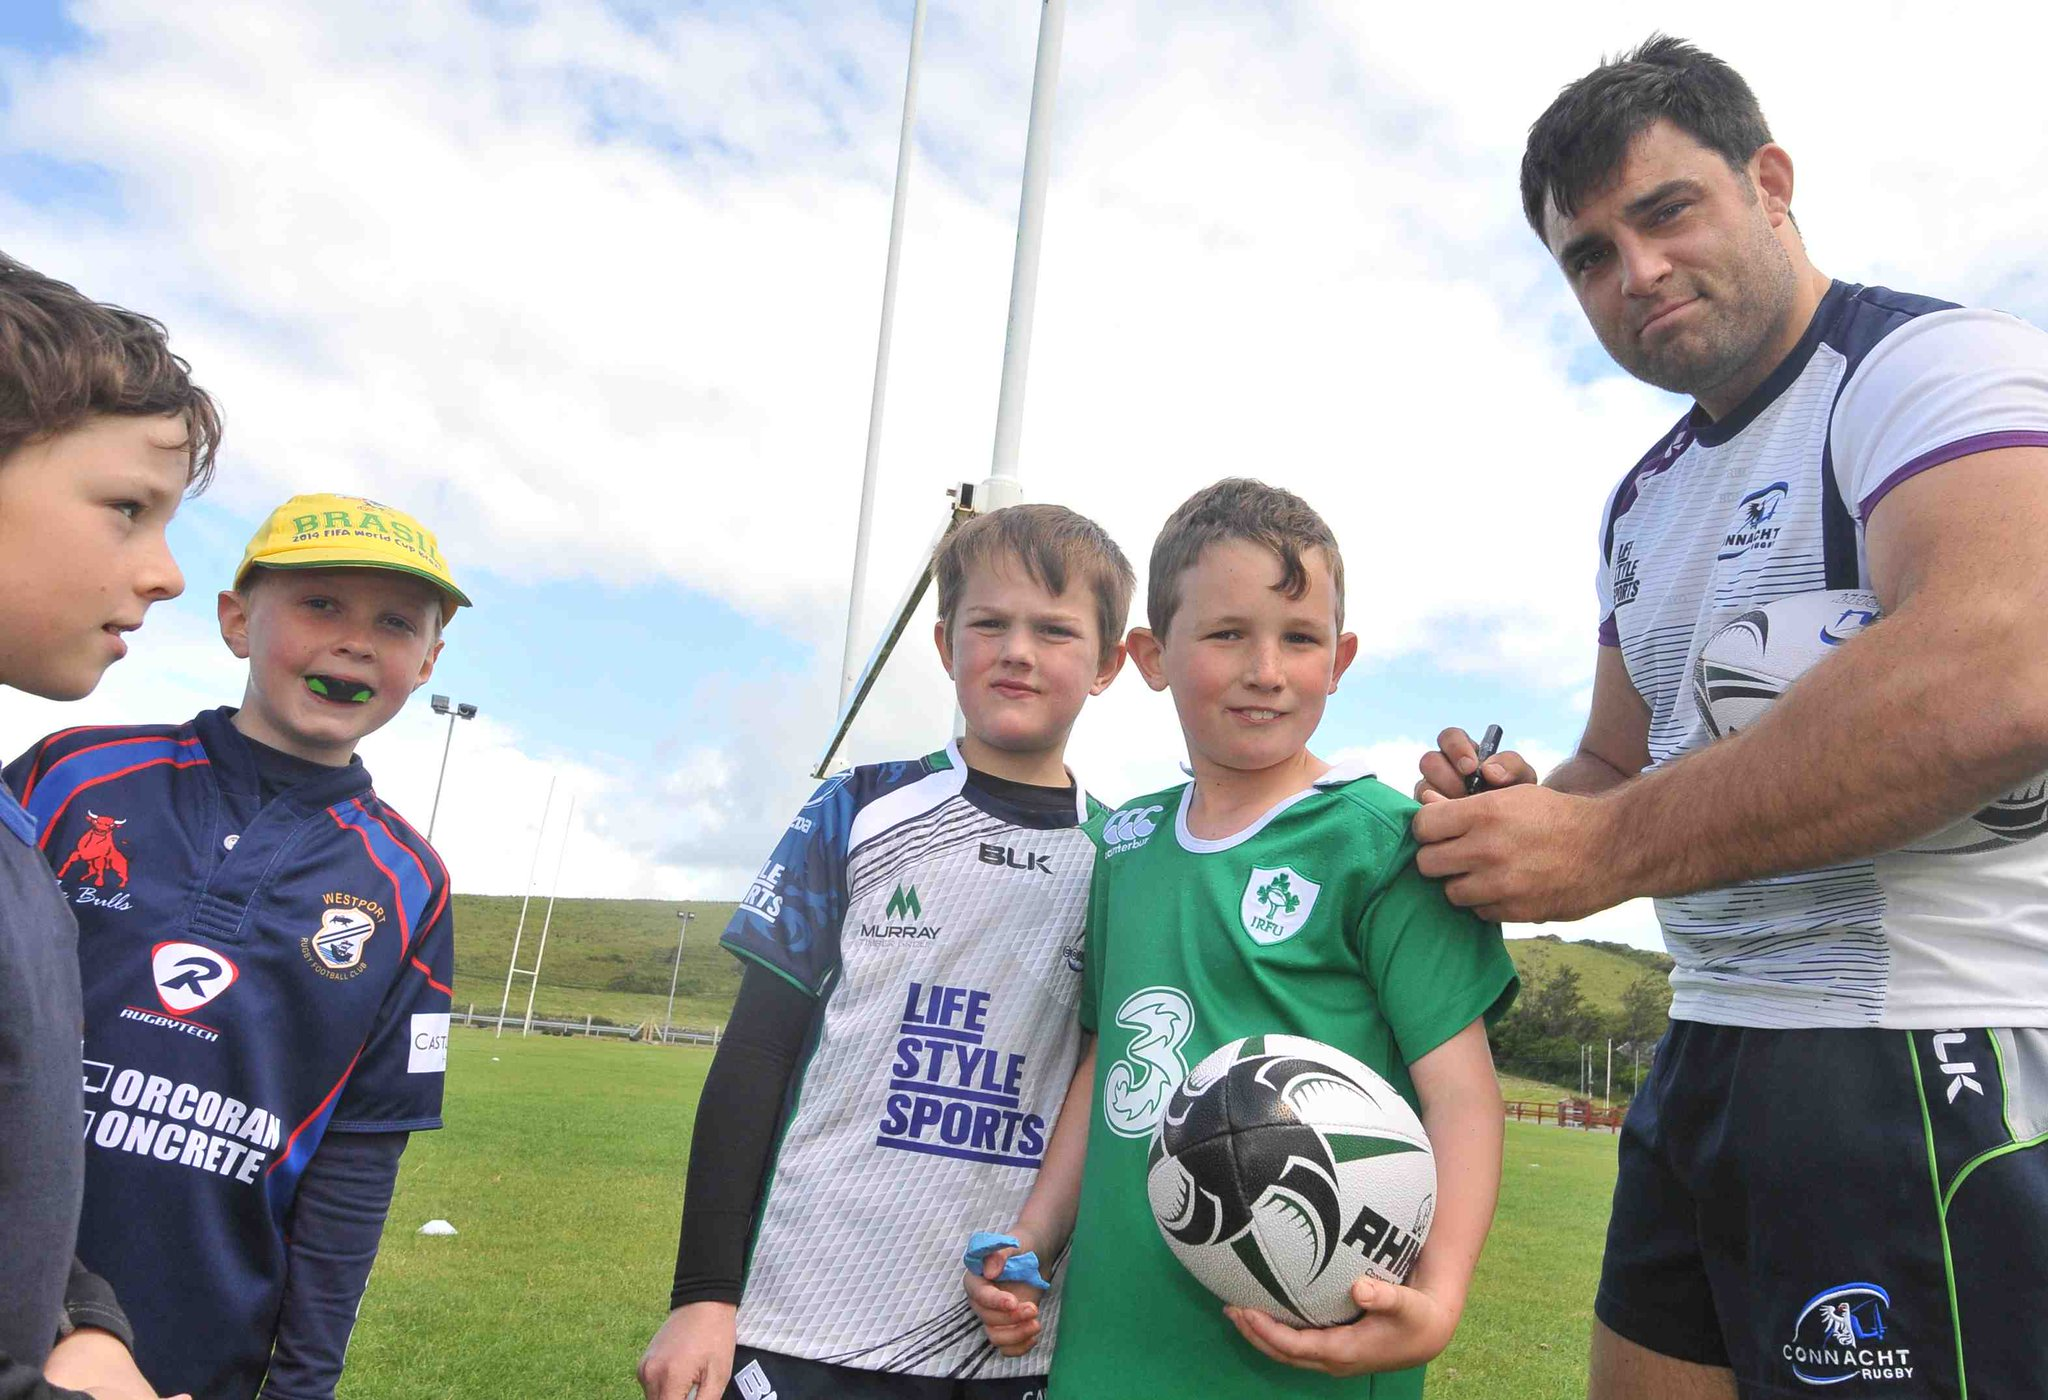 RT @connachtrugby: Great week @westport_rfc for the Connacht Rugby Summer Camp.@rolocks1 made the trip to camp yesterday for fun & games http://t.co/9lN8hn9g8o